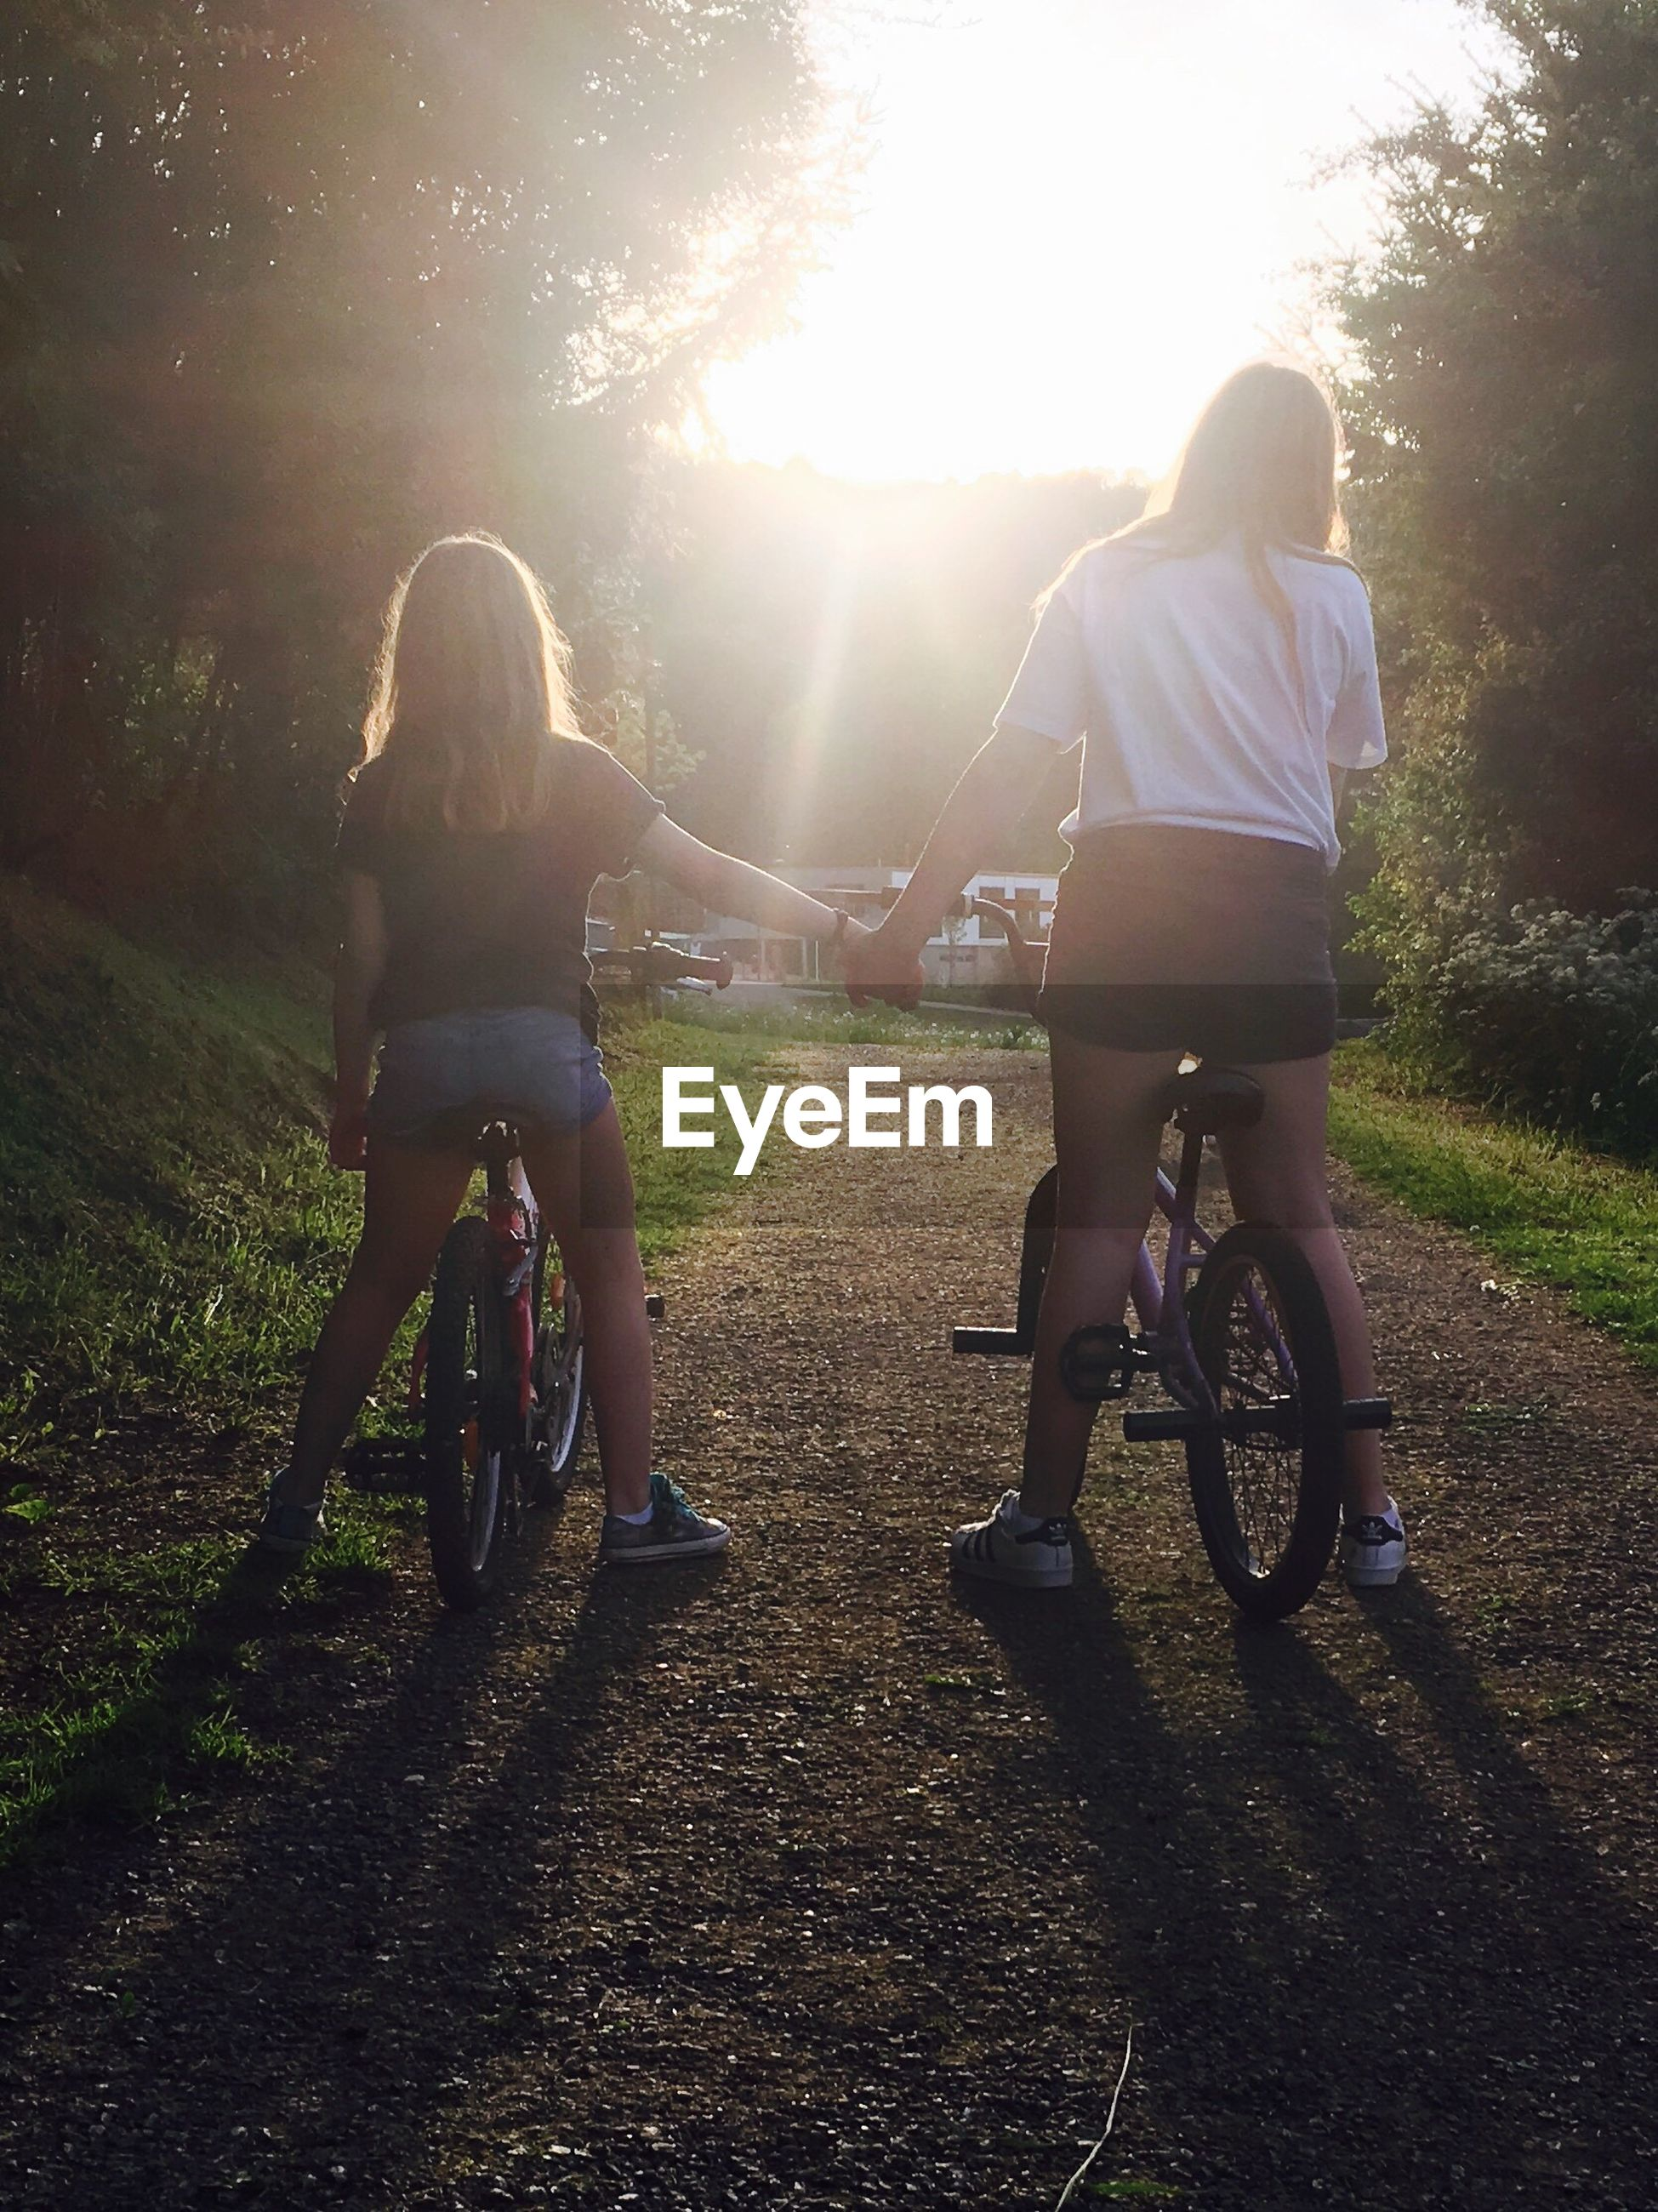 two people, bicycle, togetherness, real people, leisure activity, full length, rear view, casual clothing, childhood, bonding, lifestyles, tree, day, sunlight, riding, outdoors, transportation, girls, happiness, friendship, nature, grass, cycling helmet, sky, adult, people